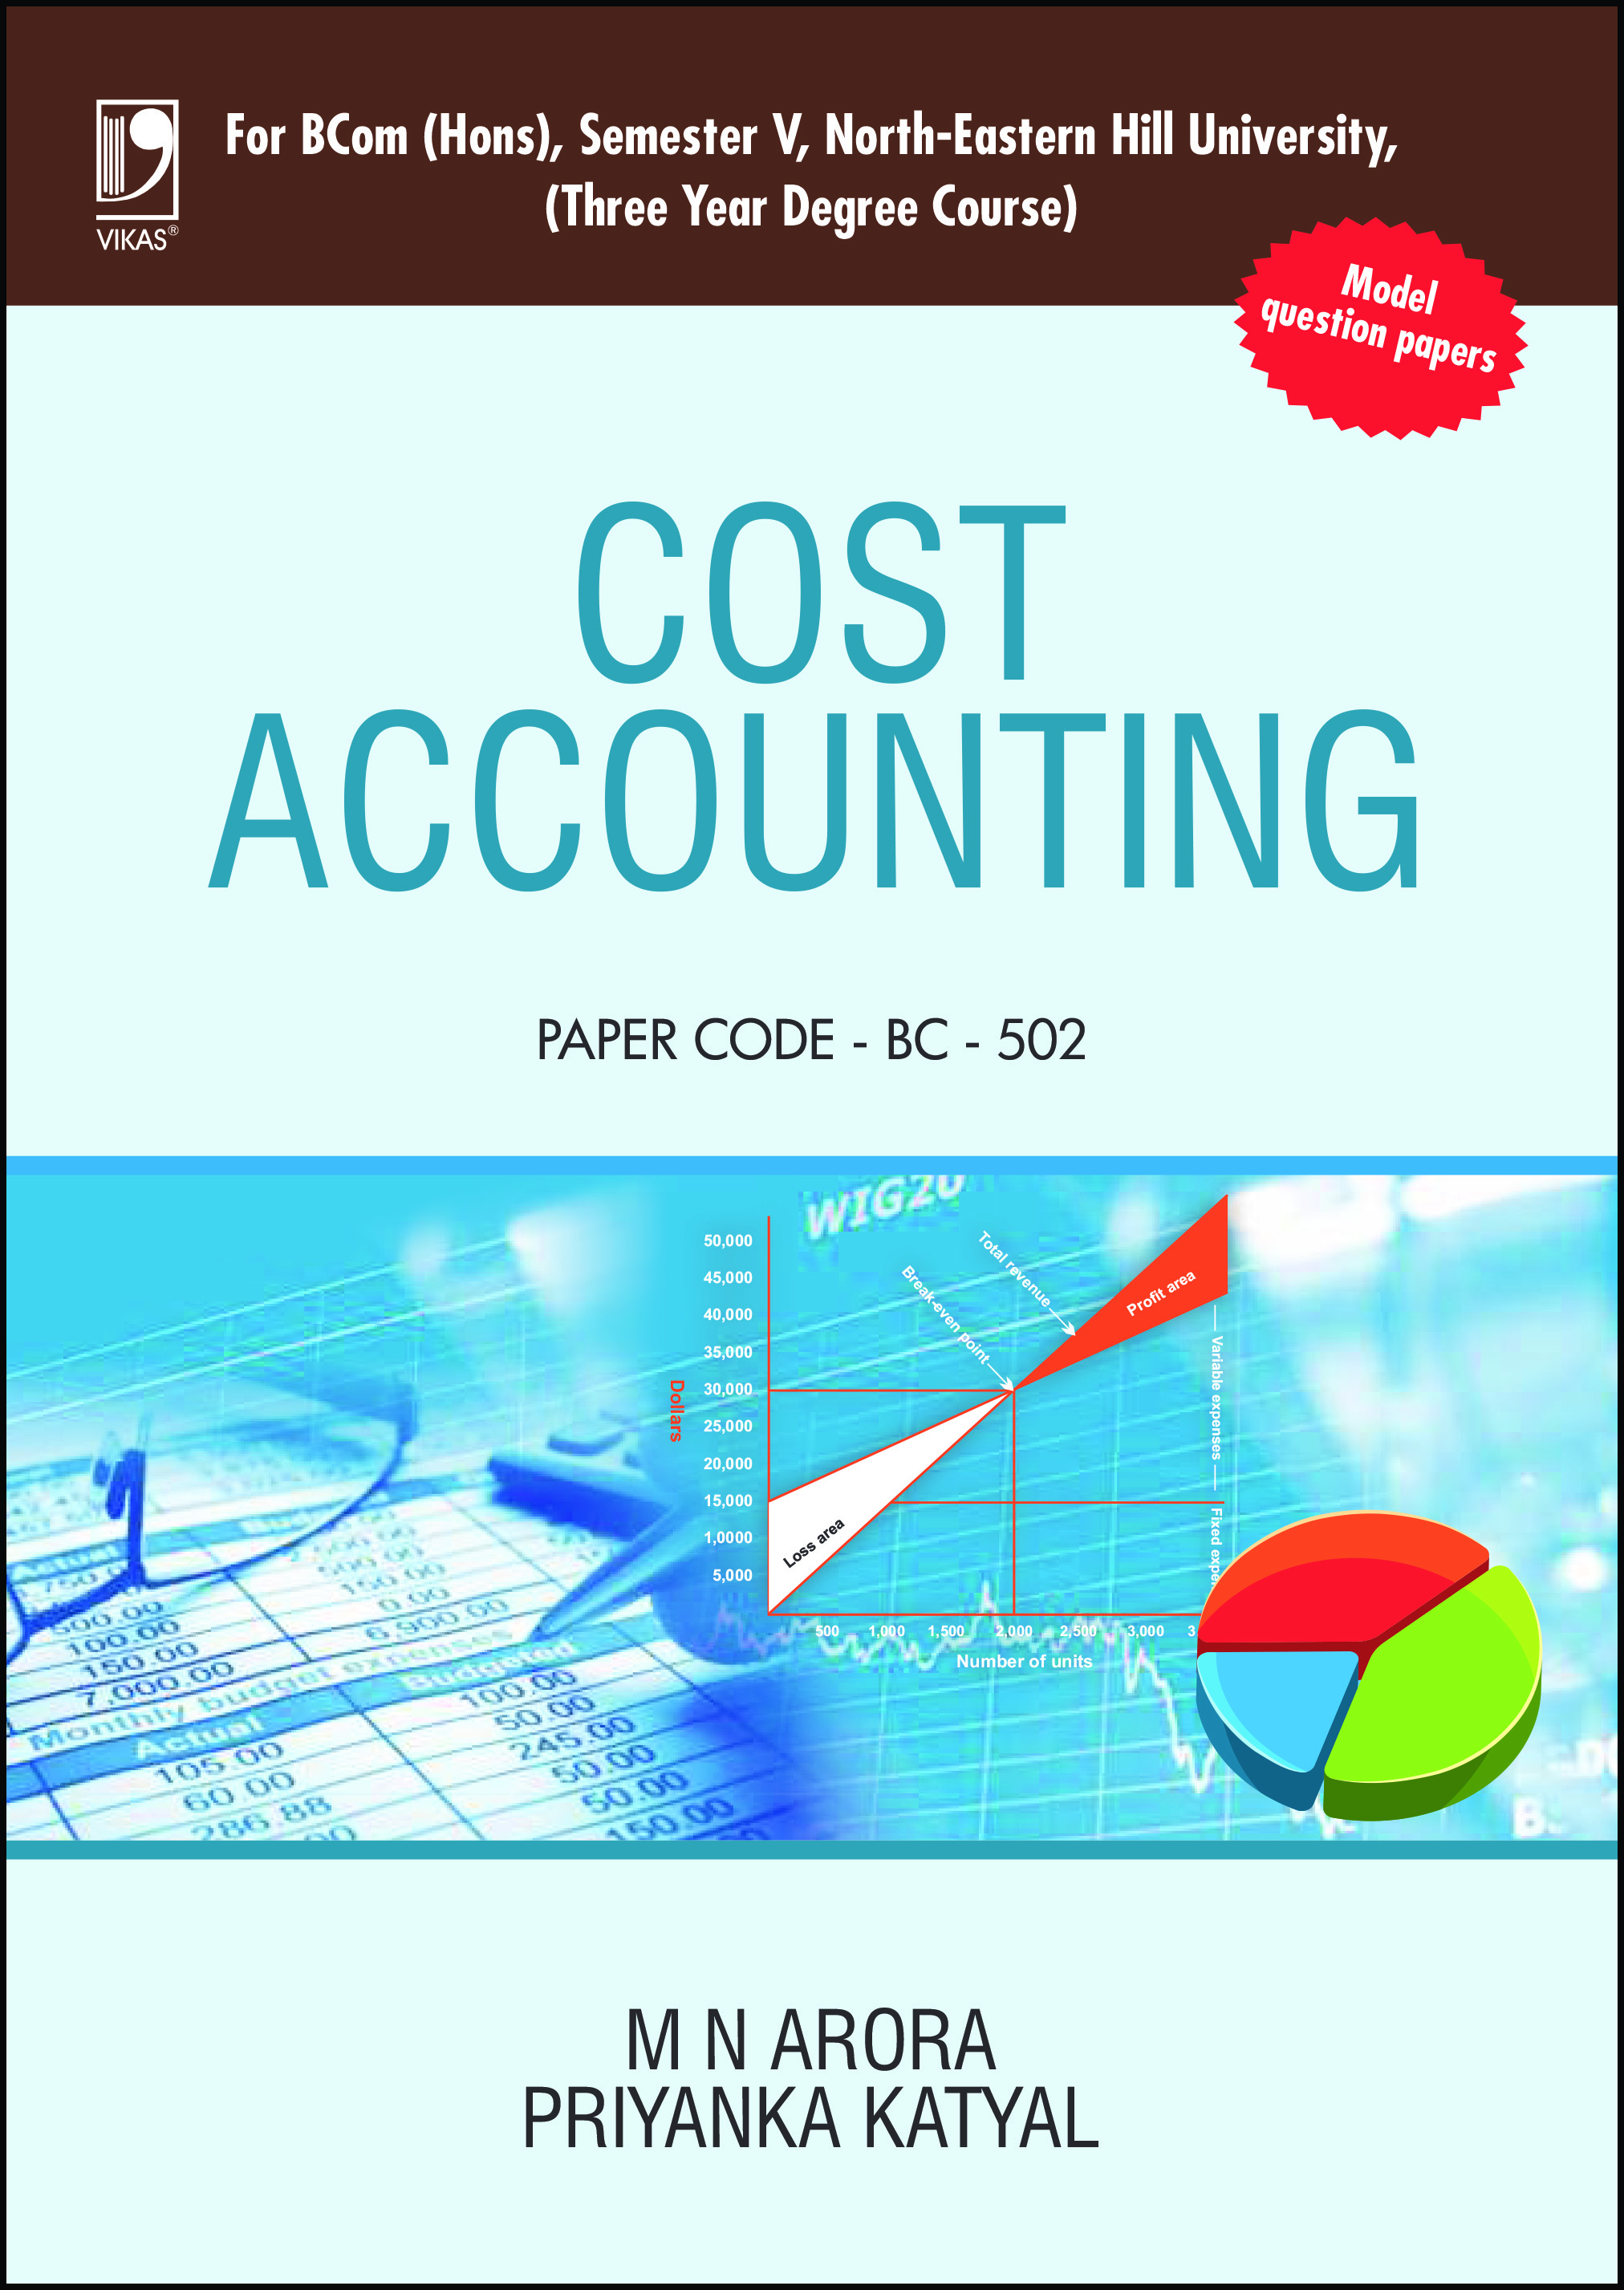 Cost Accounting (For B.Com. (Hons), 5th Semester, North-Eastern Hill University) by  M N Arora